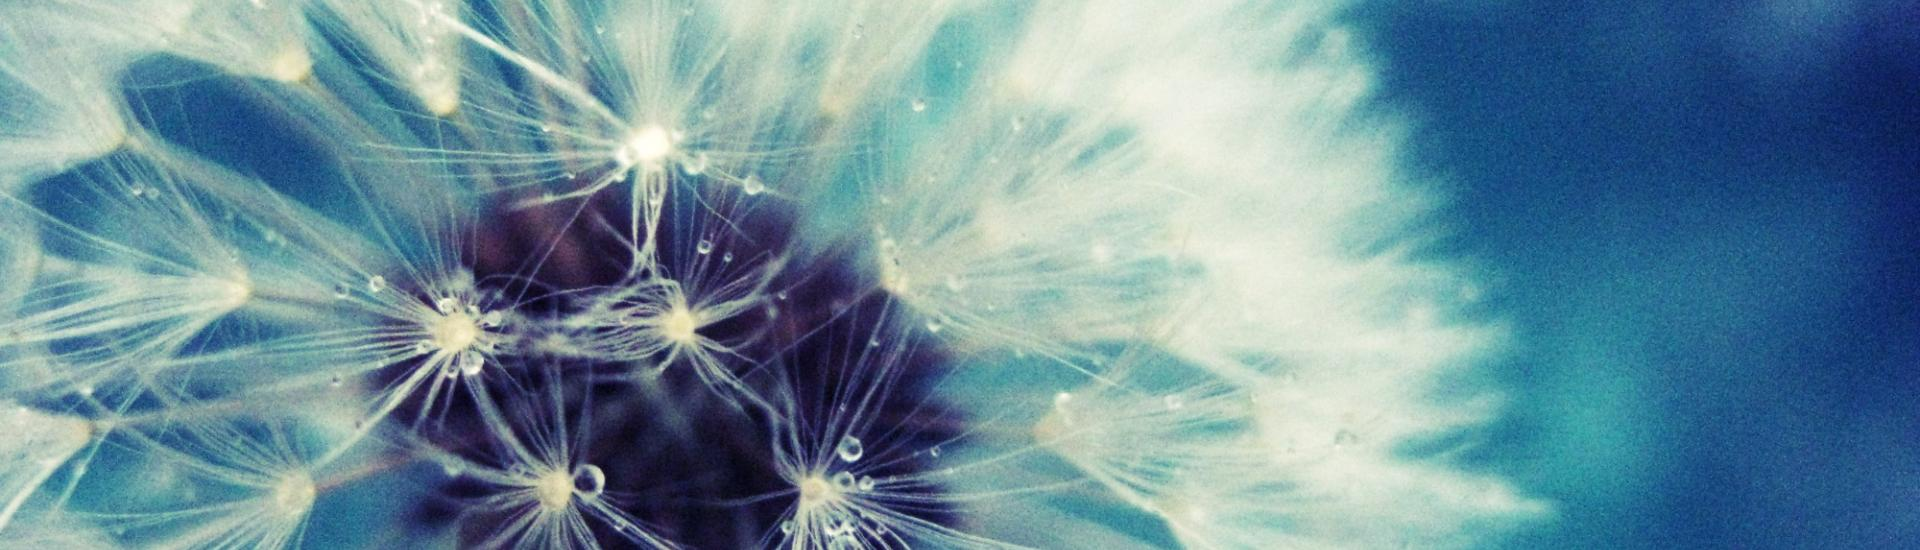 files/Dandelions/dandelion-wallpaper-24.jpg